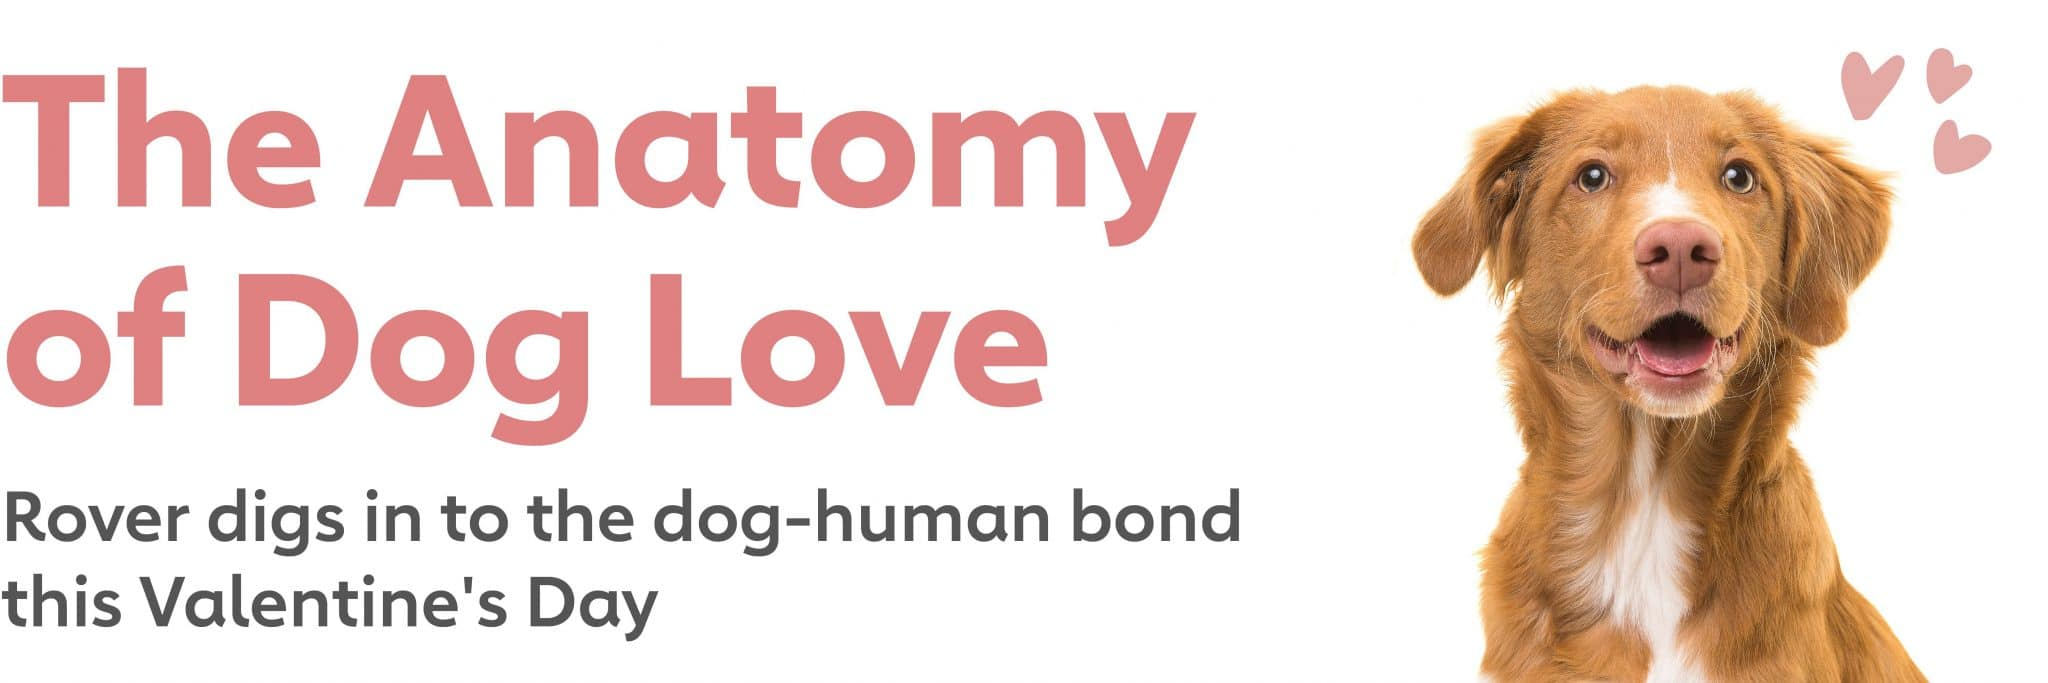 The Anatomy of Dog Love: New Research Shows that Dogs Are Changing Valentine's Day